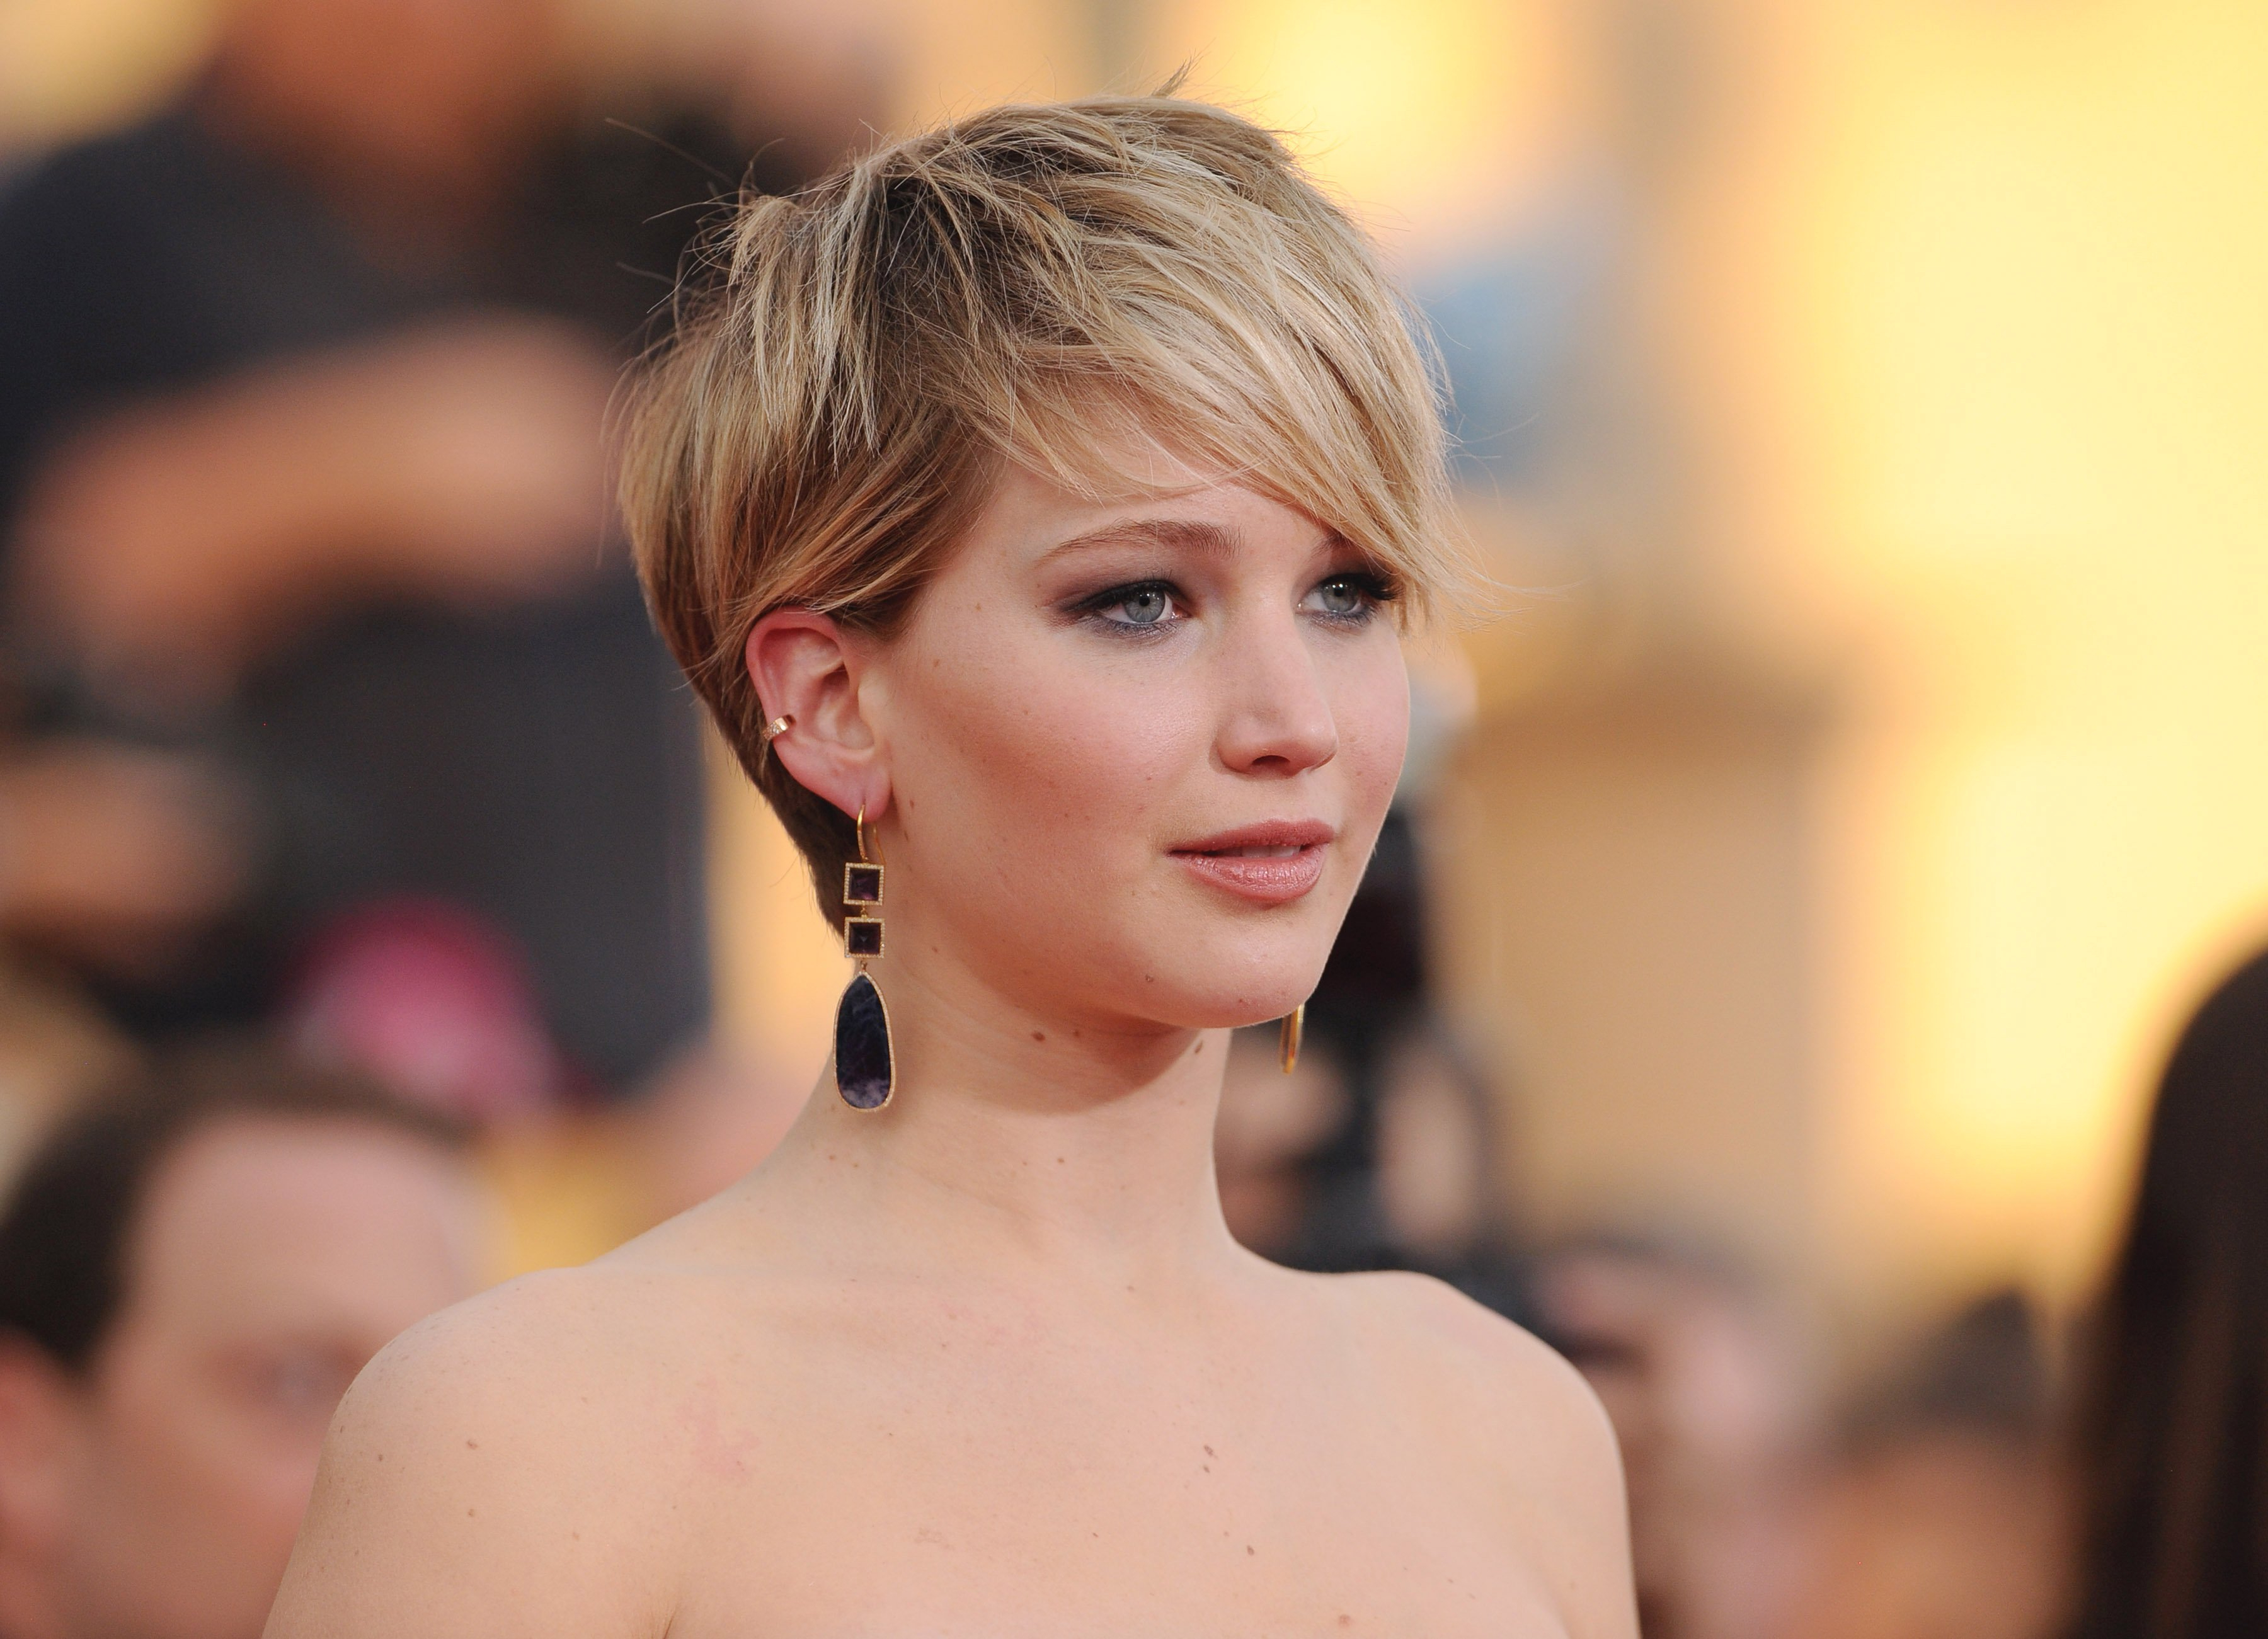 35 Fabulous Short Haircuts For Thick Hair Throughout Ladies Short Hairstyles For Thick Hair (View 12 of 25)